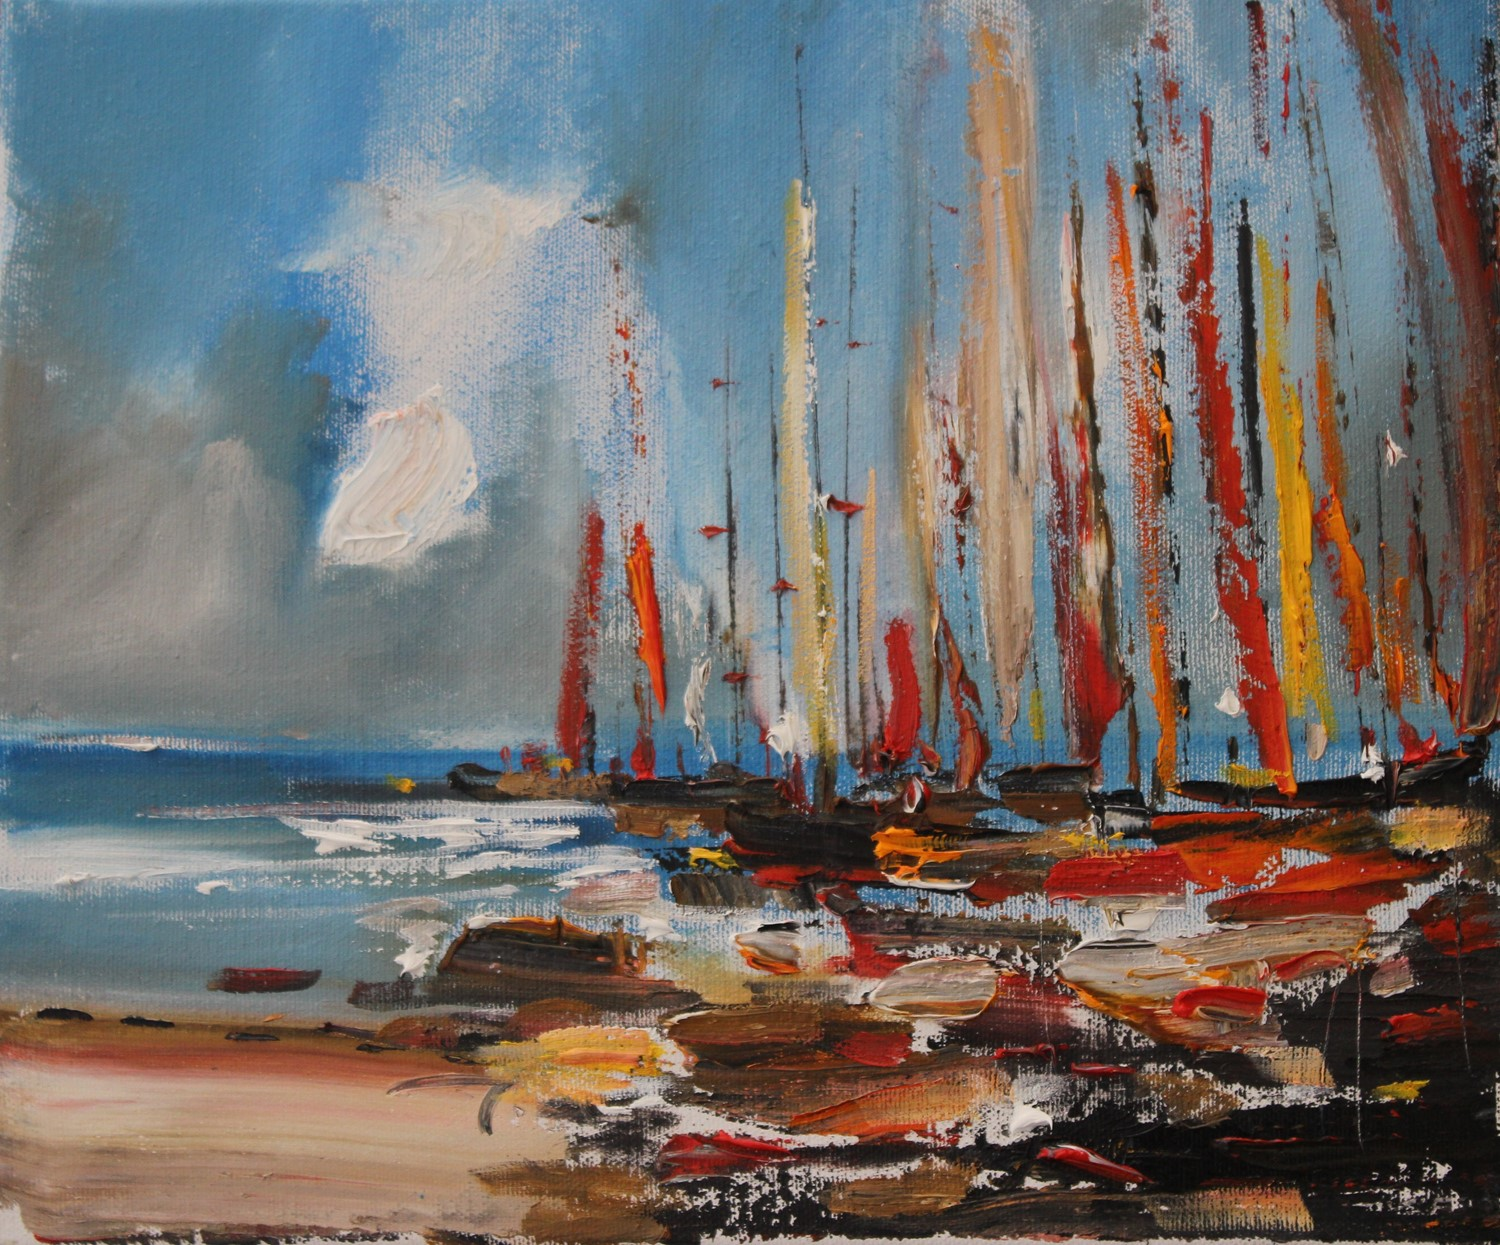 'A Little crowd of boats ' by artist Rosanne Barr